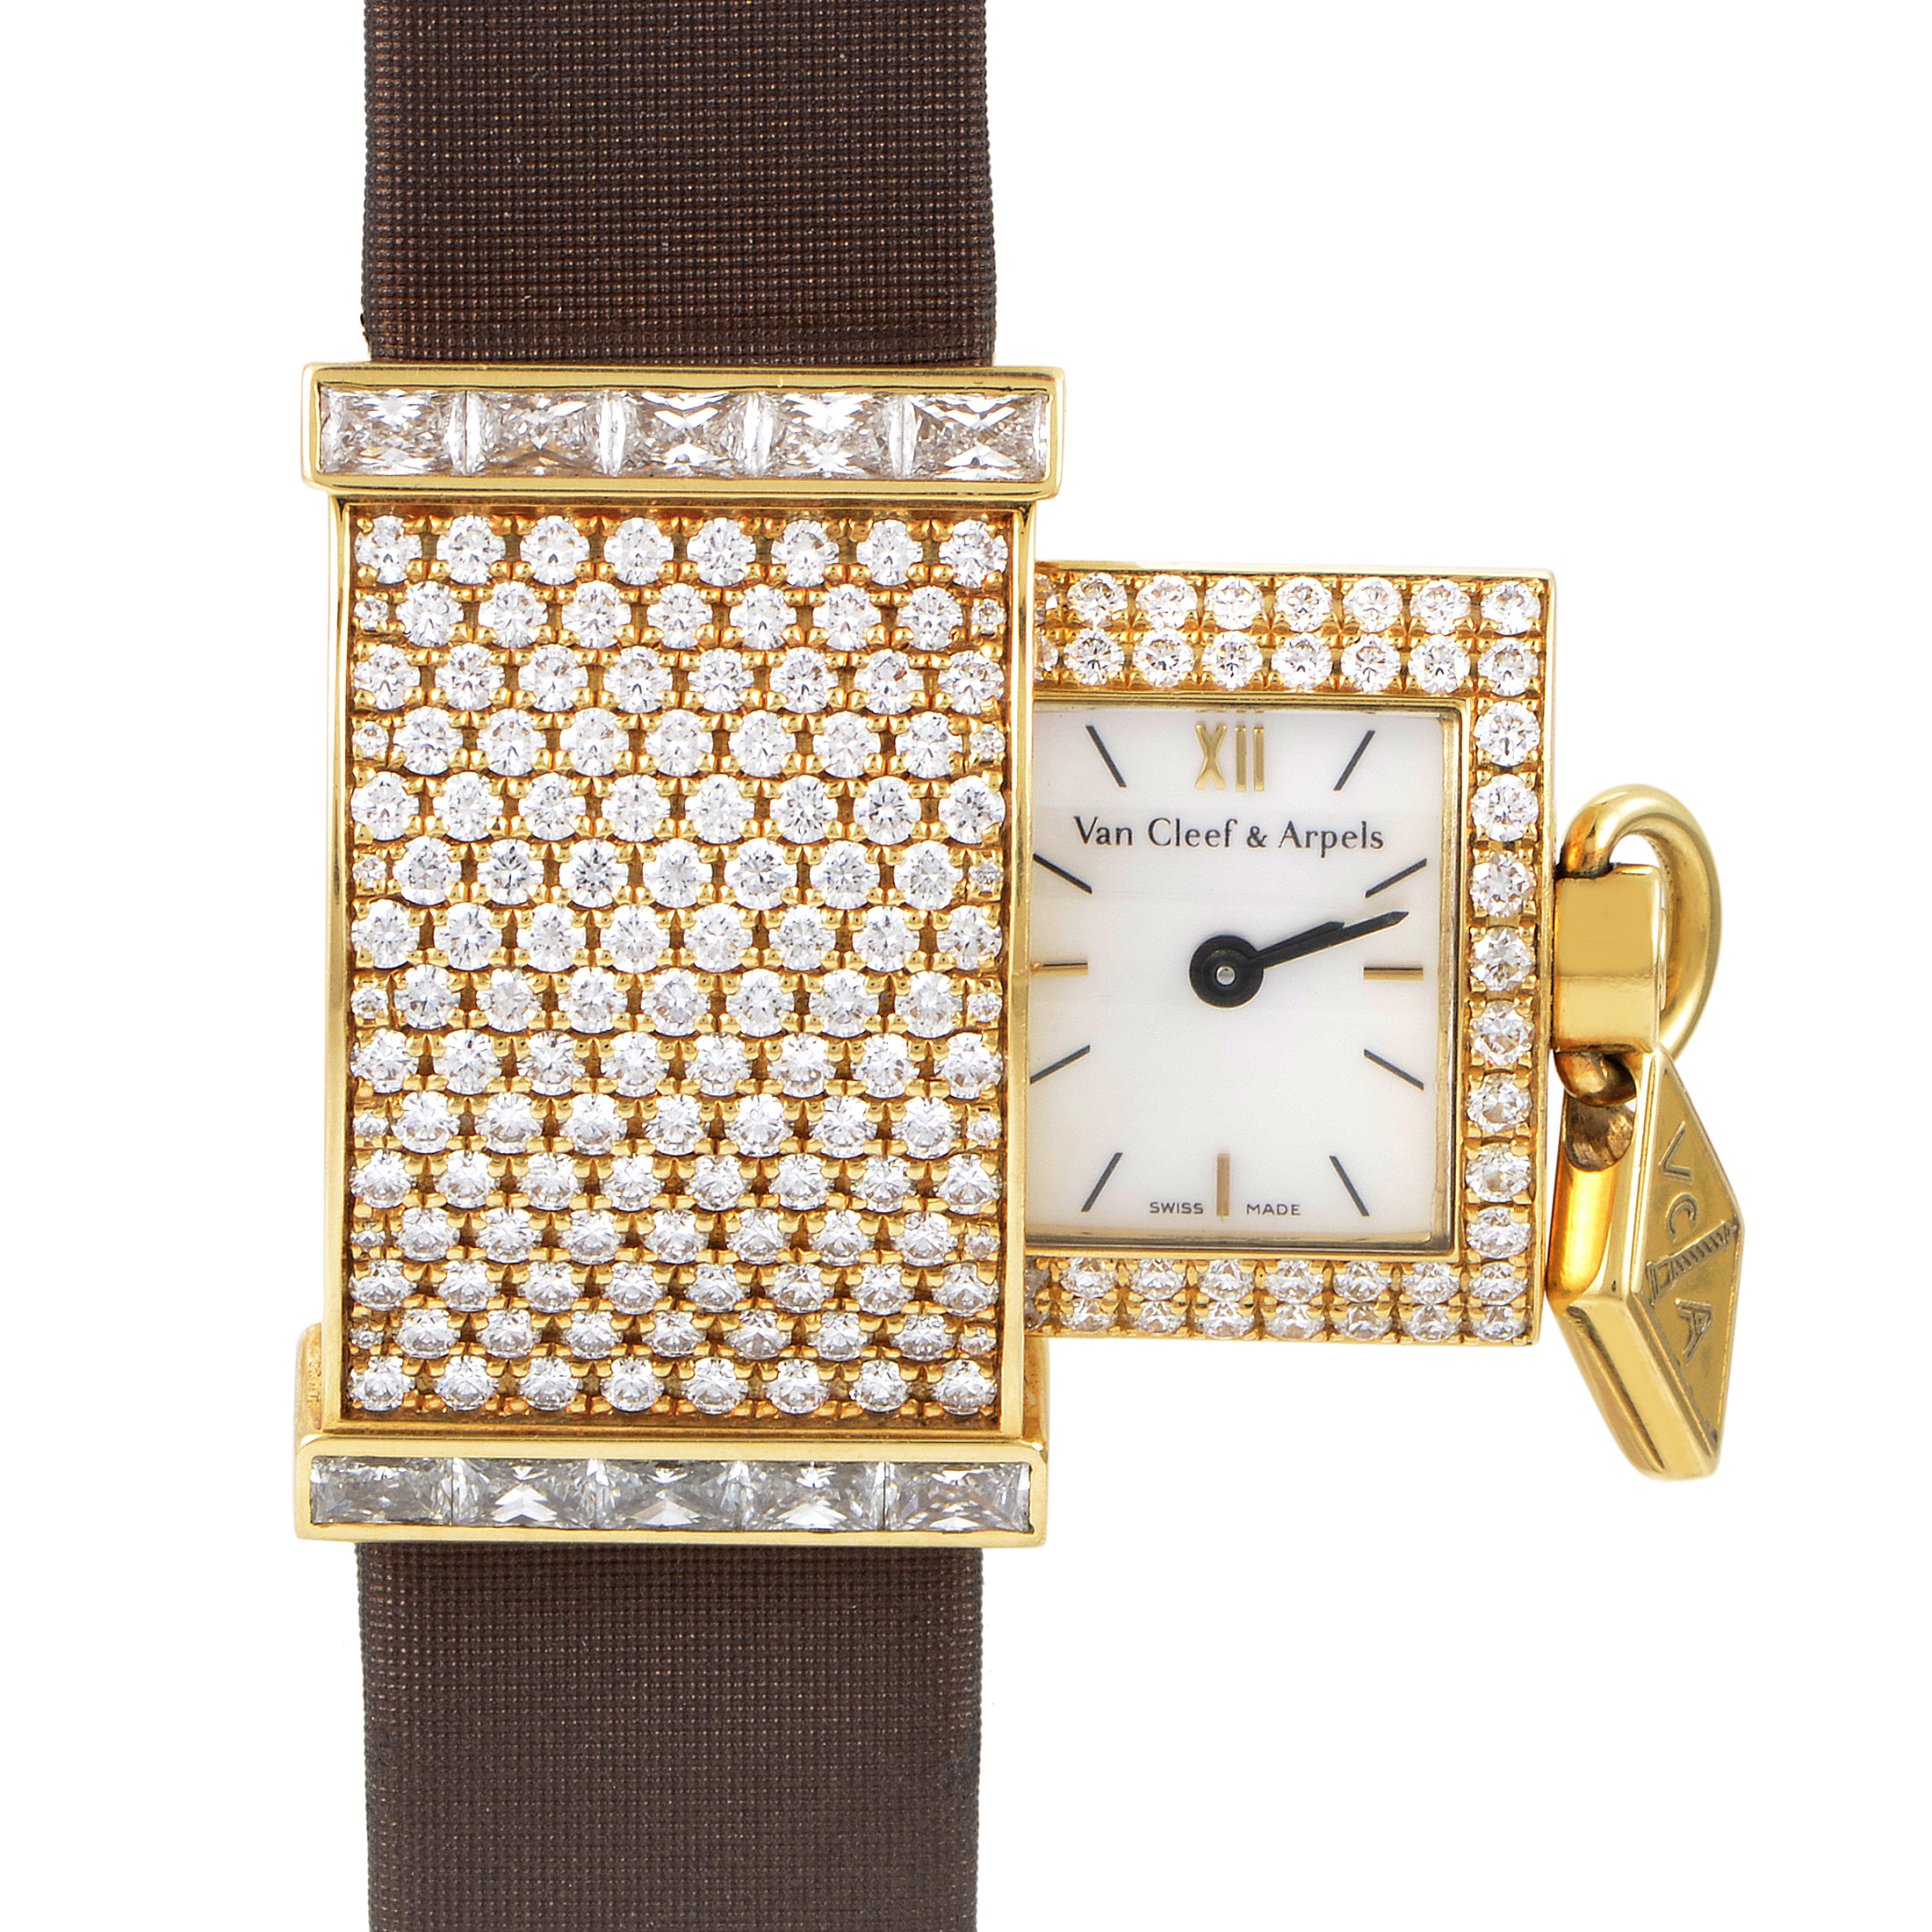 Van Cleef & Arpels Secret Pavée Women's 18K Yellow Gold Diamond Watch